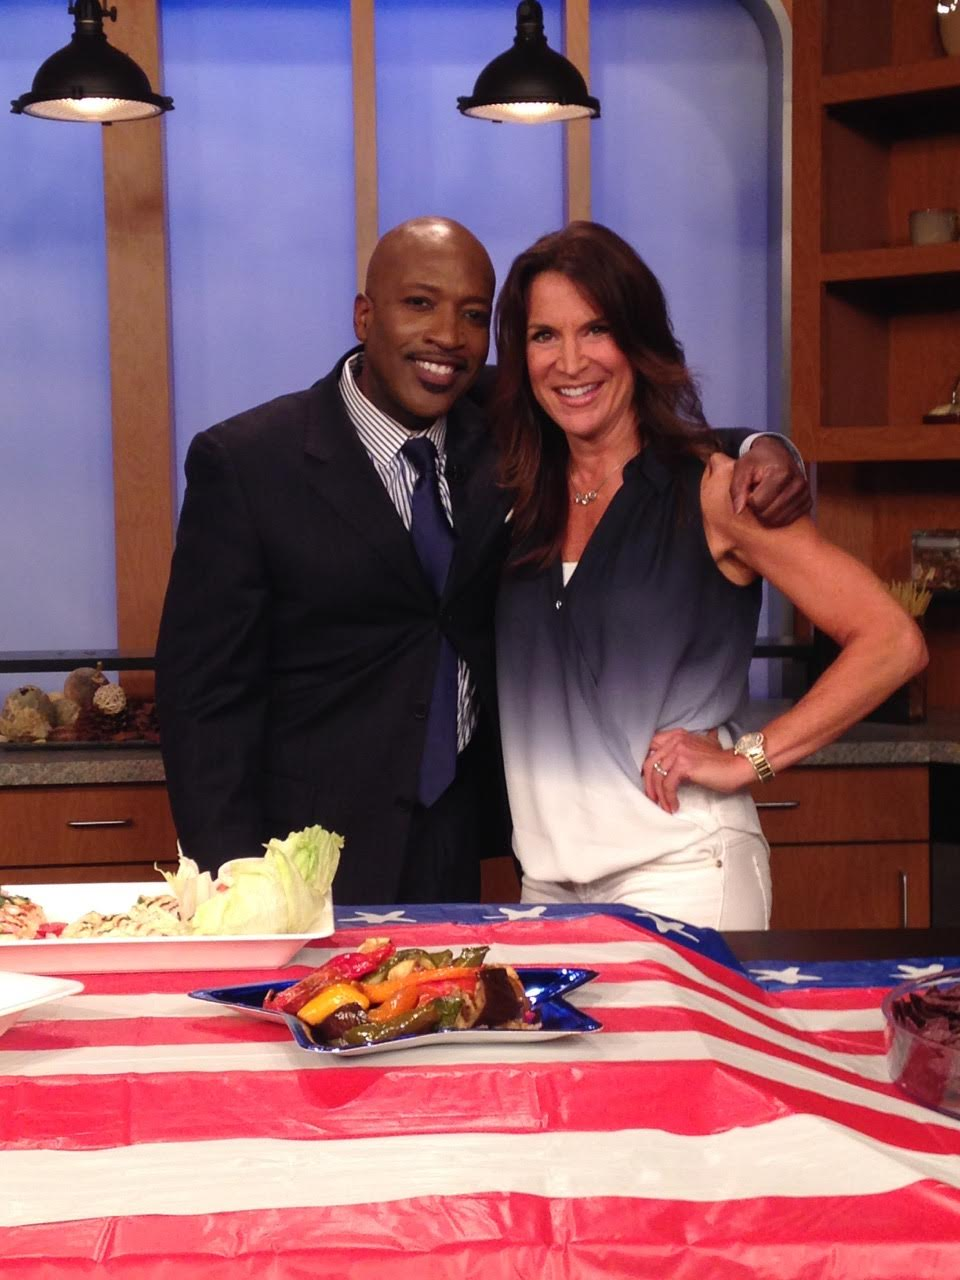 Debi Silber and TV host Antwon Lewis